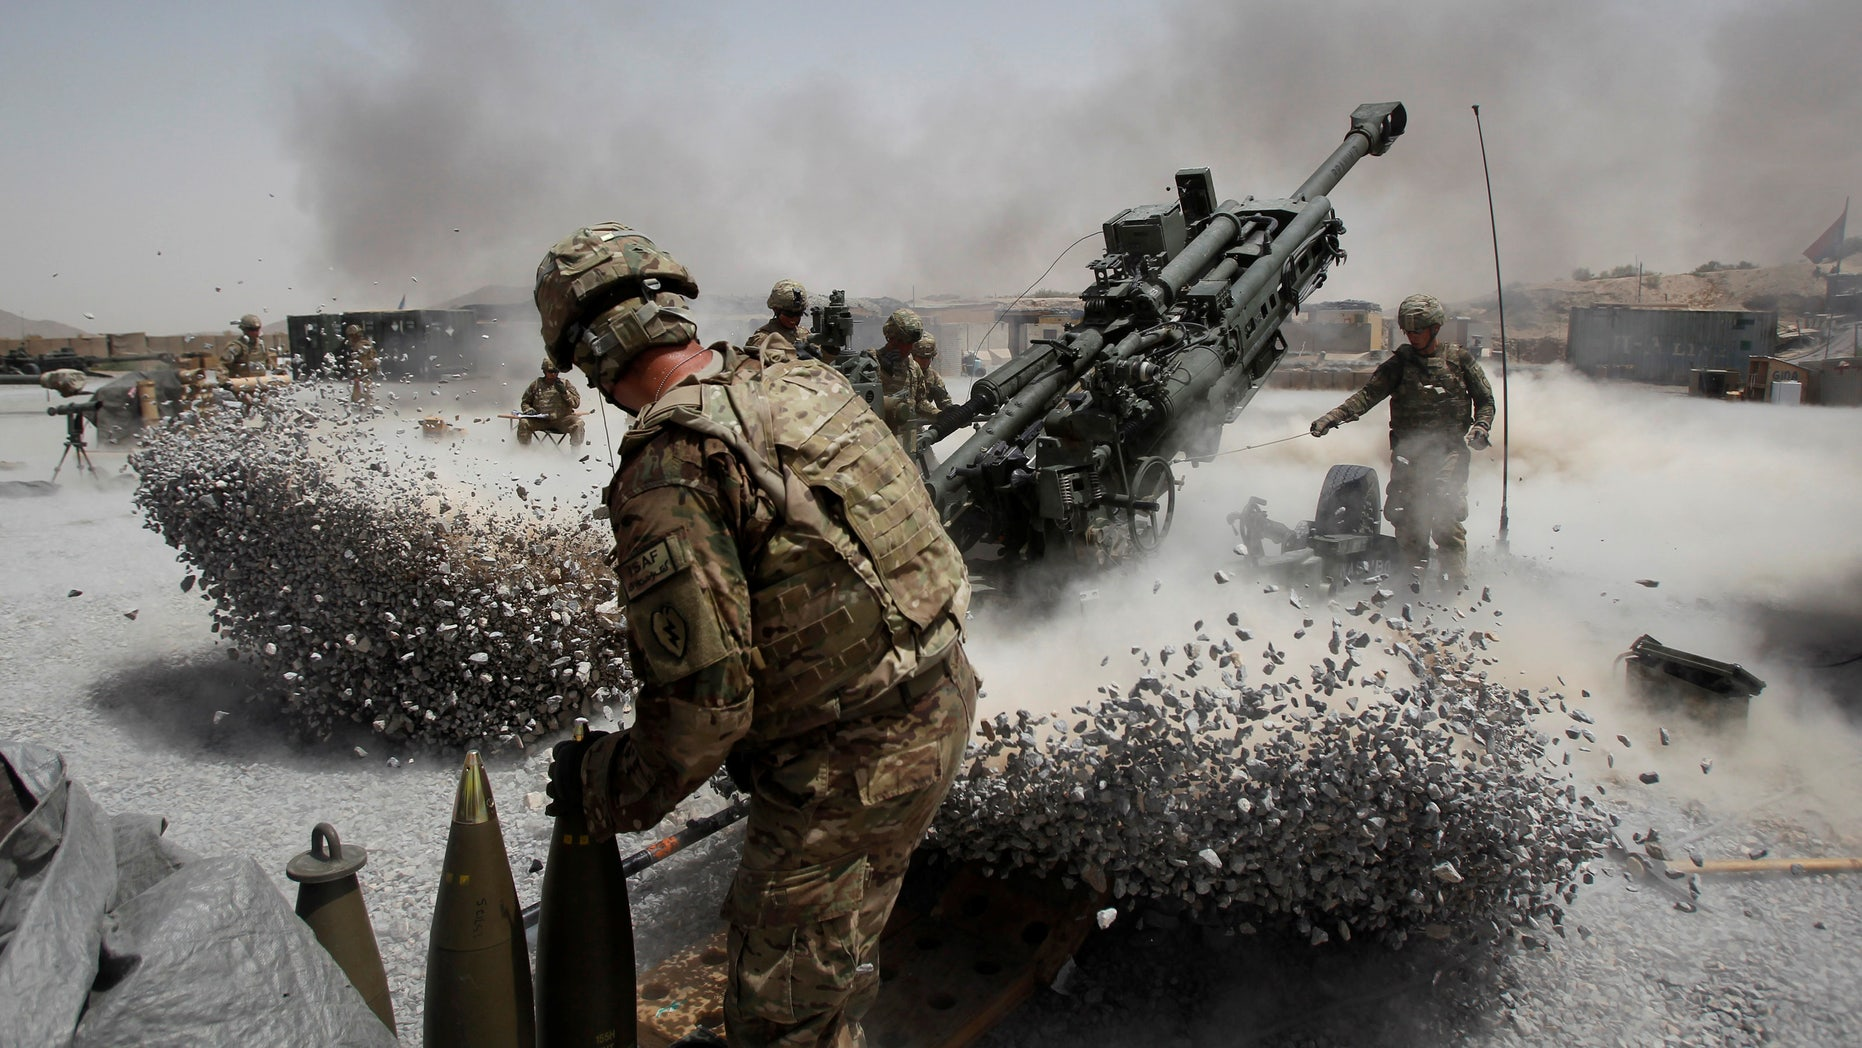 File photo: U.S. Army soldiers from the 2nd Platoon, B battery 2-8 field artillery, fire a howitzer artillery piece at Seprwan Ghar forward fire base in Panjwai district, Kandahar province southern Afghanistan, June 12, 2011.